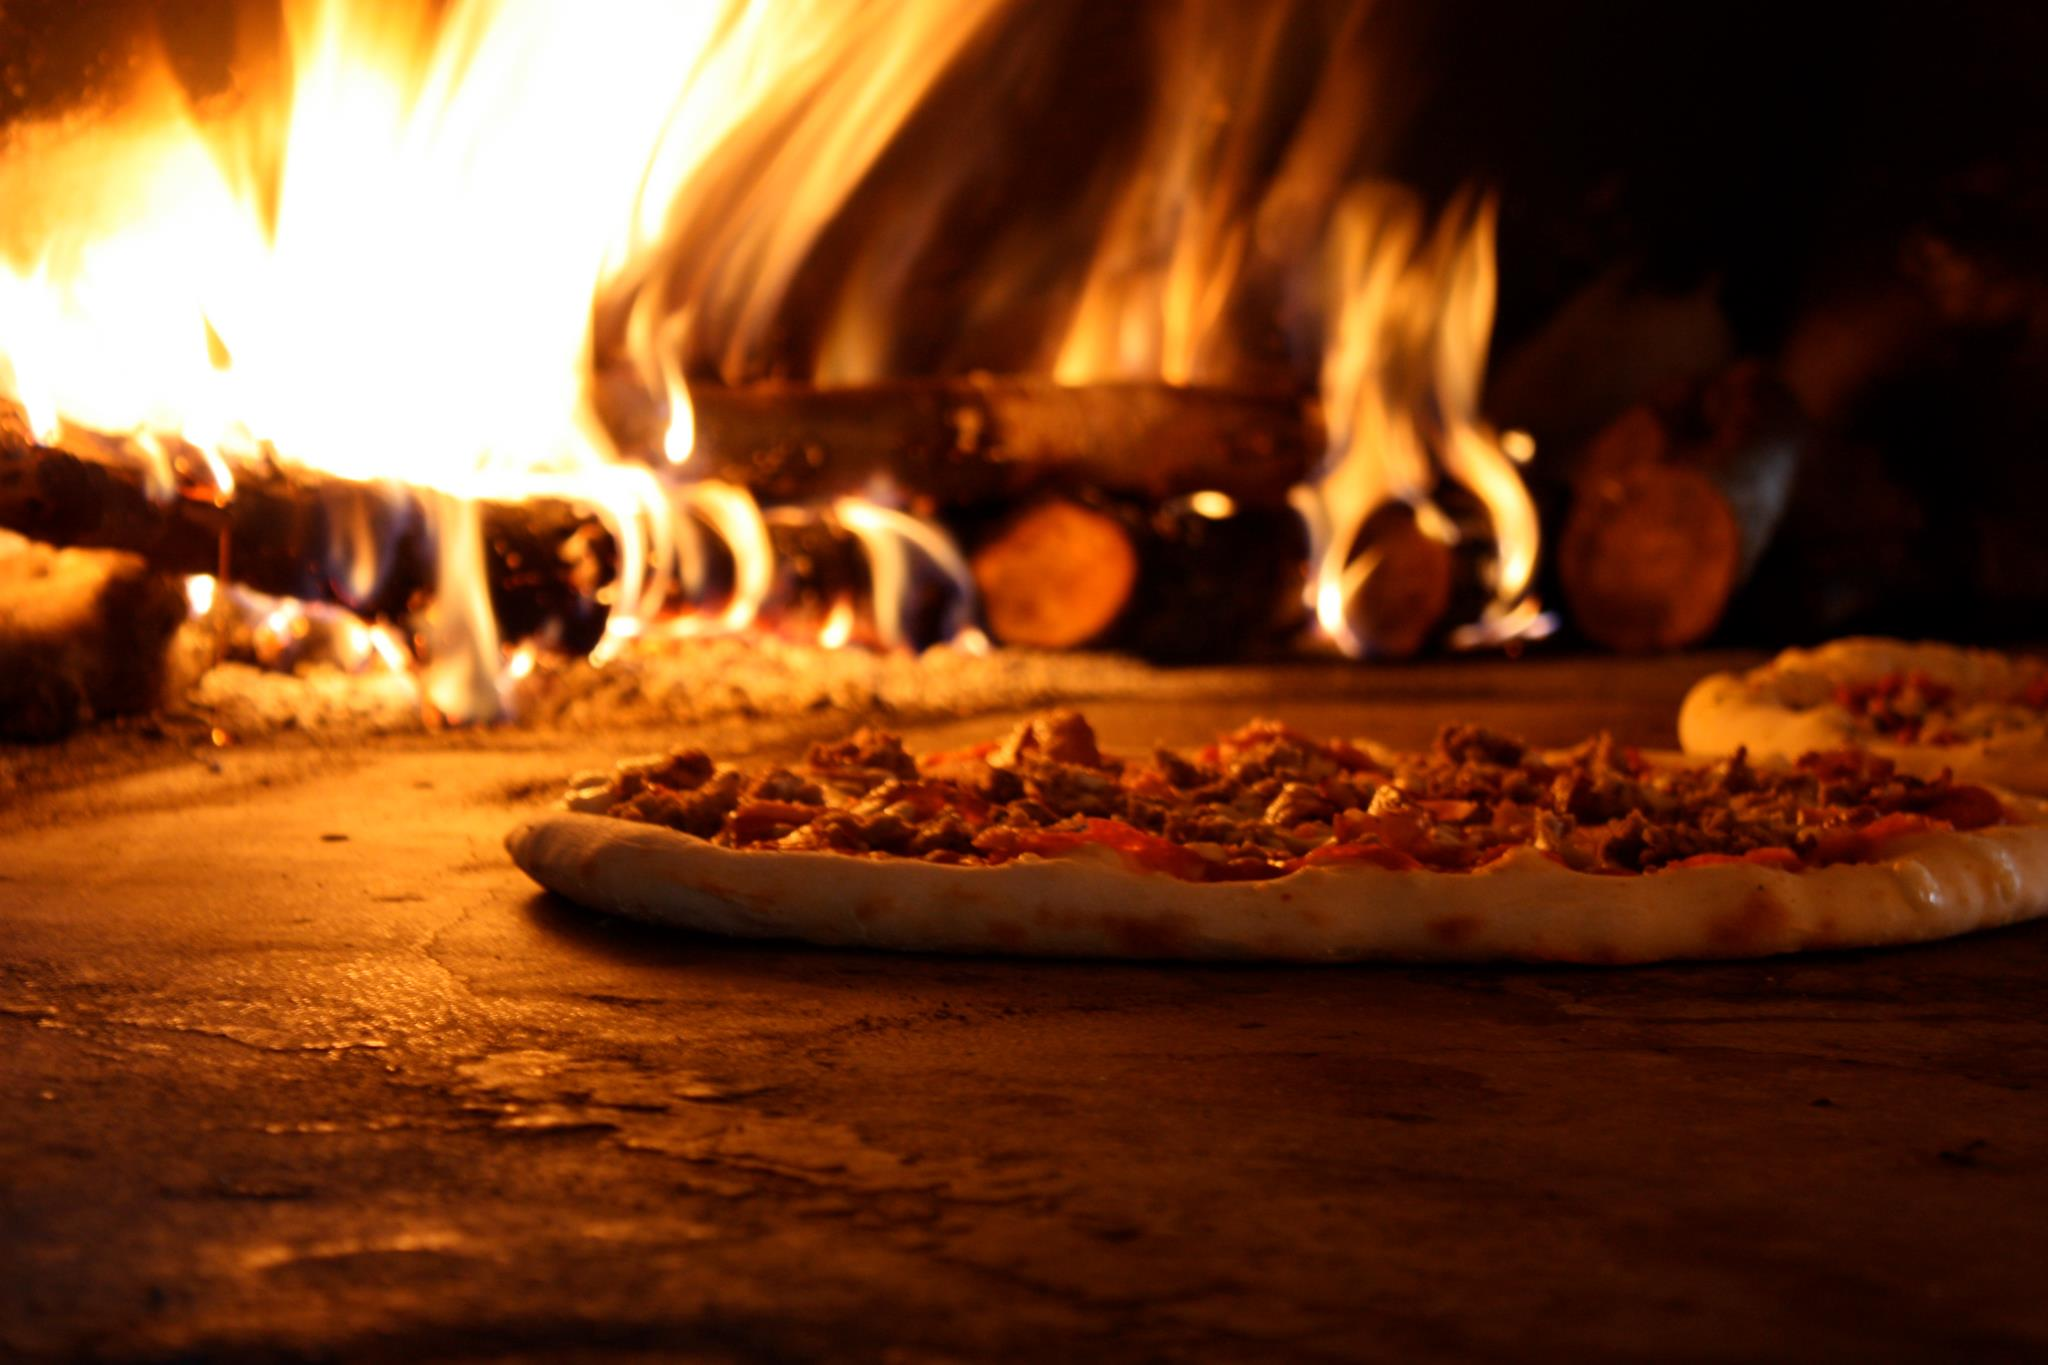 Freshly baked pizza wooden log fire